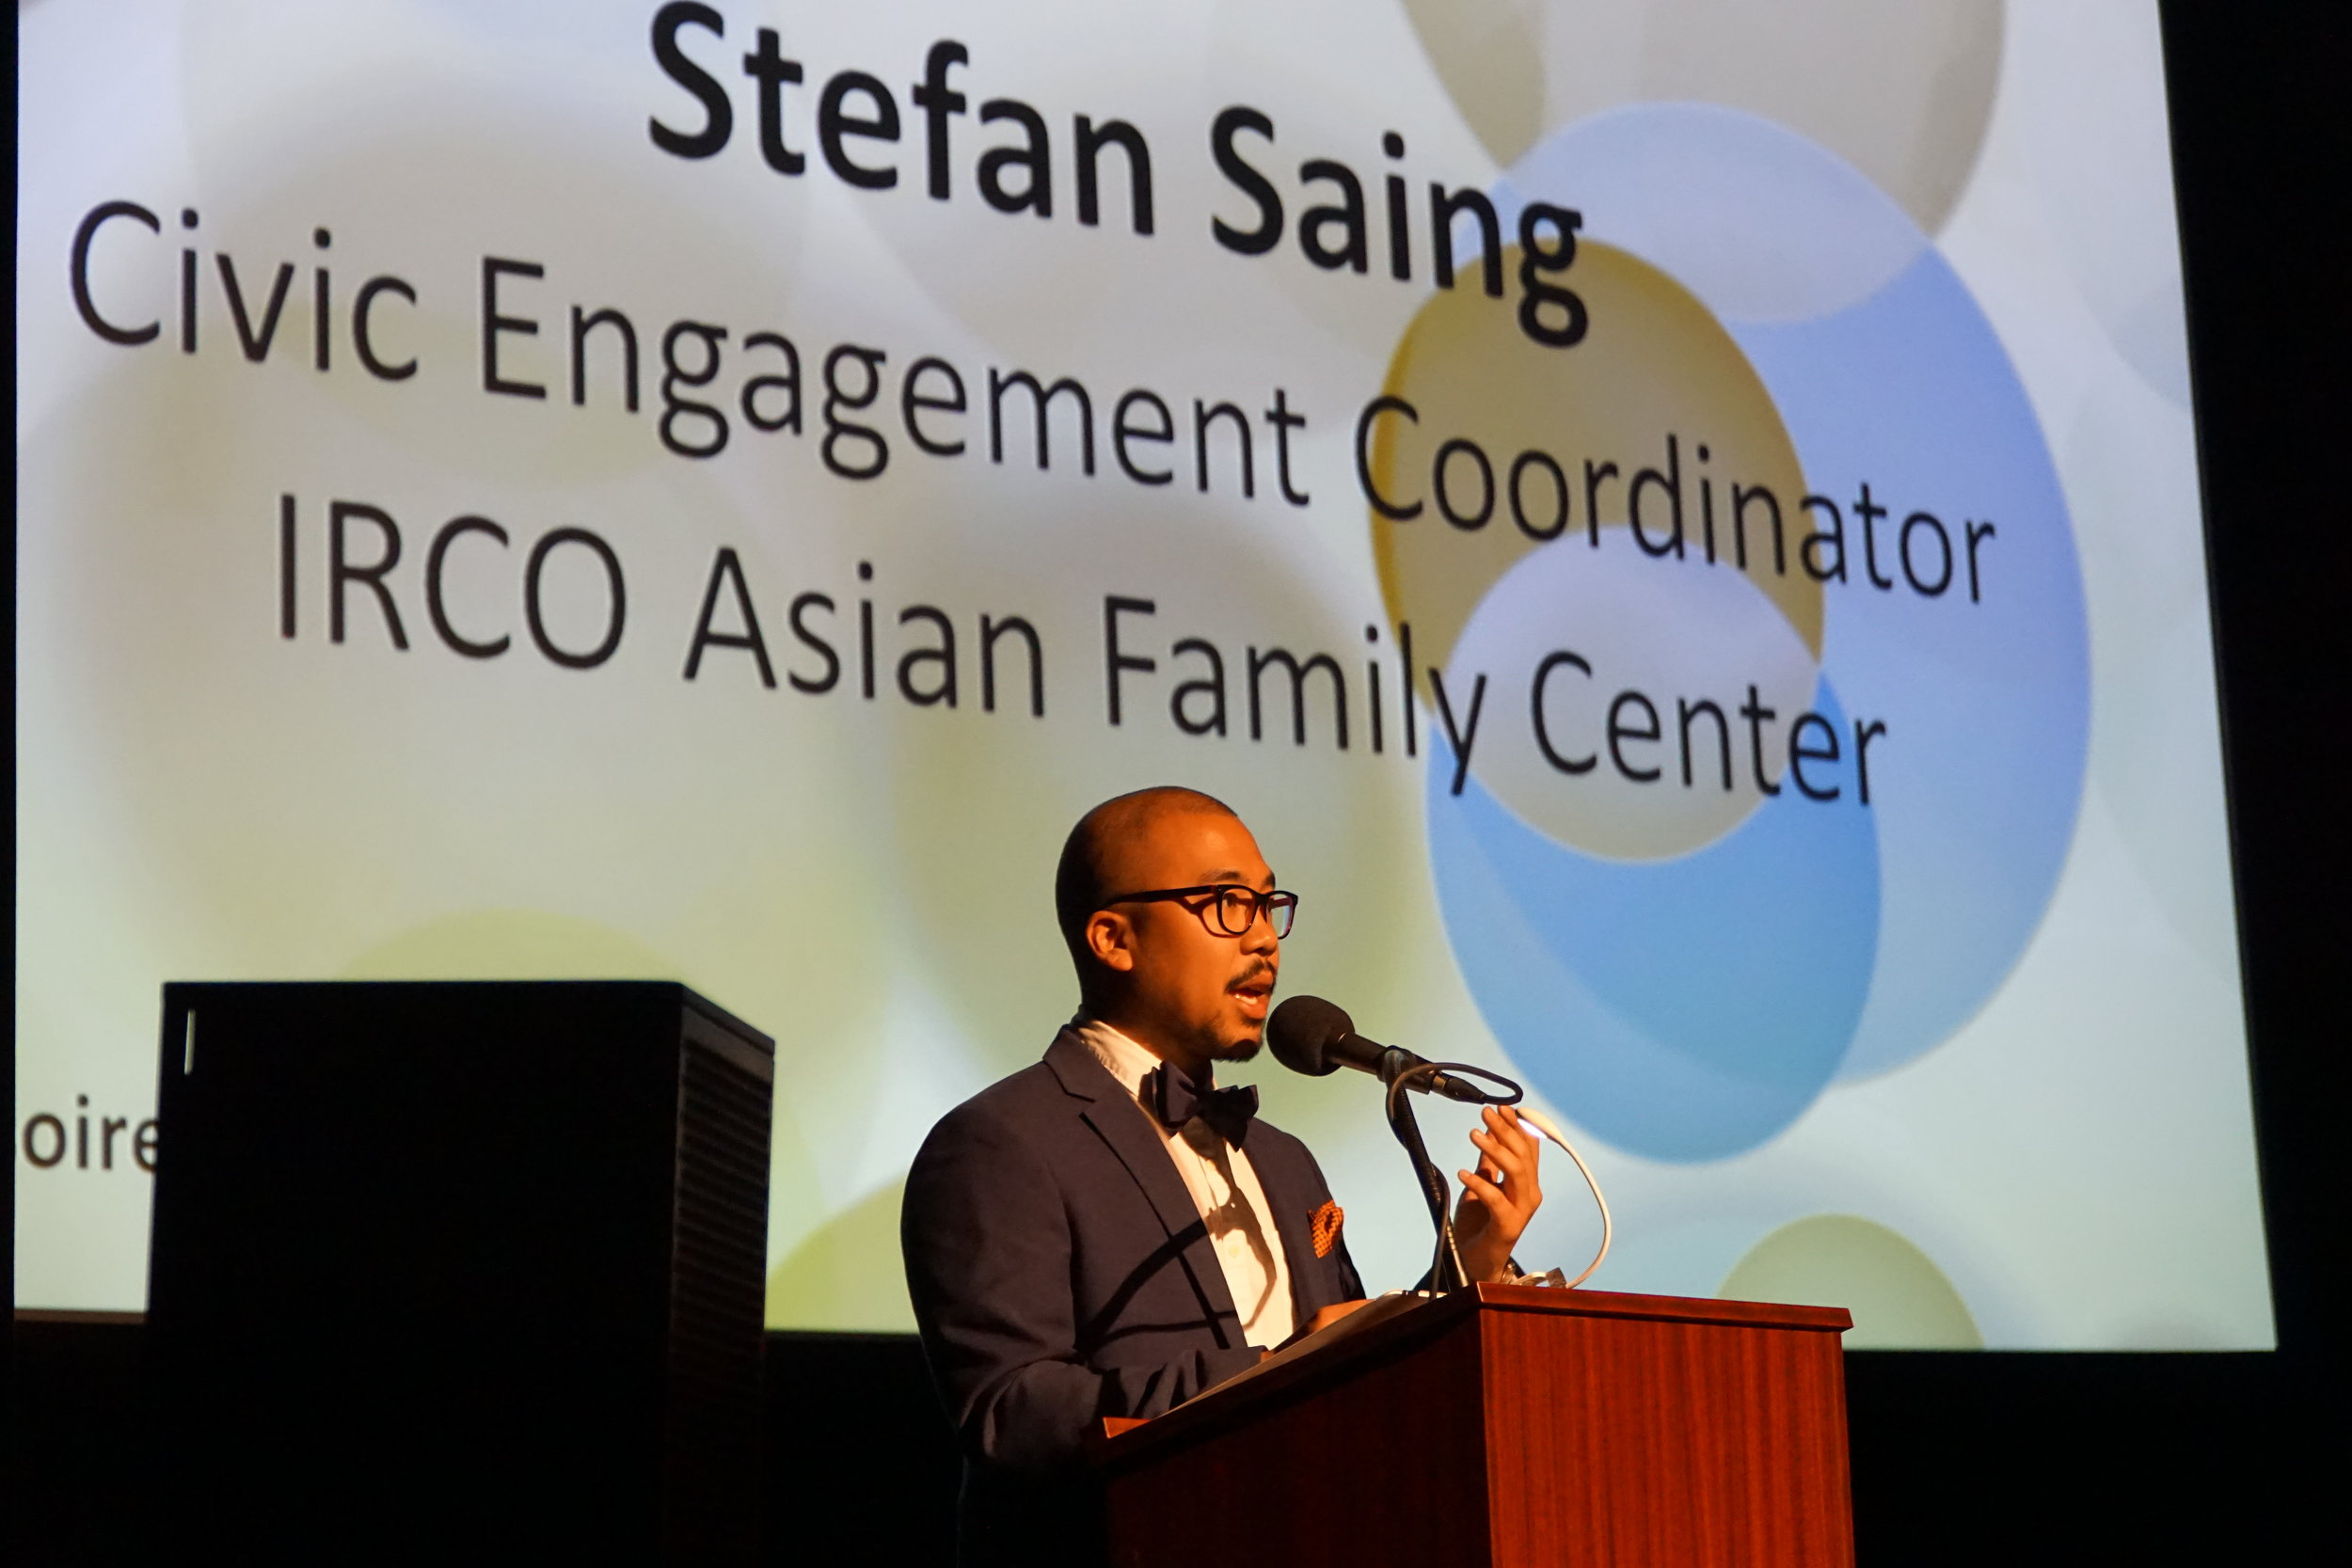 Stefan Saing, Civic Engagement Coordinator, IRCO Asian Family Center